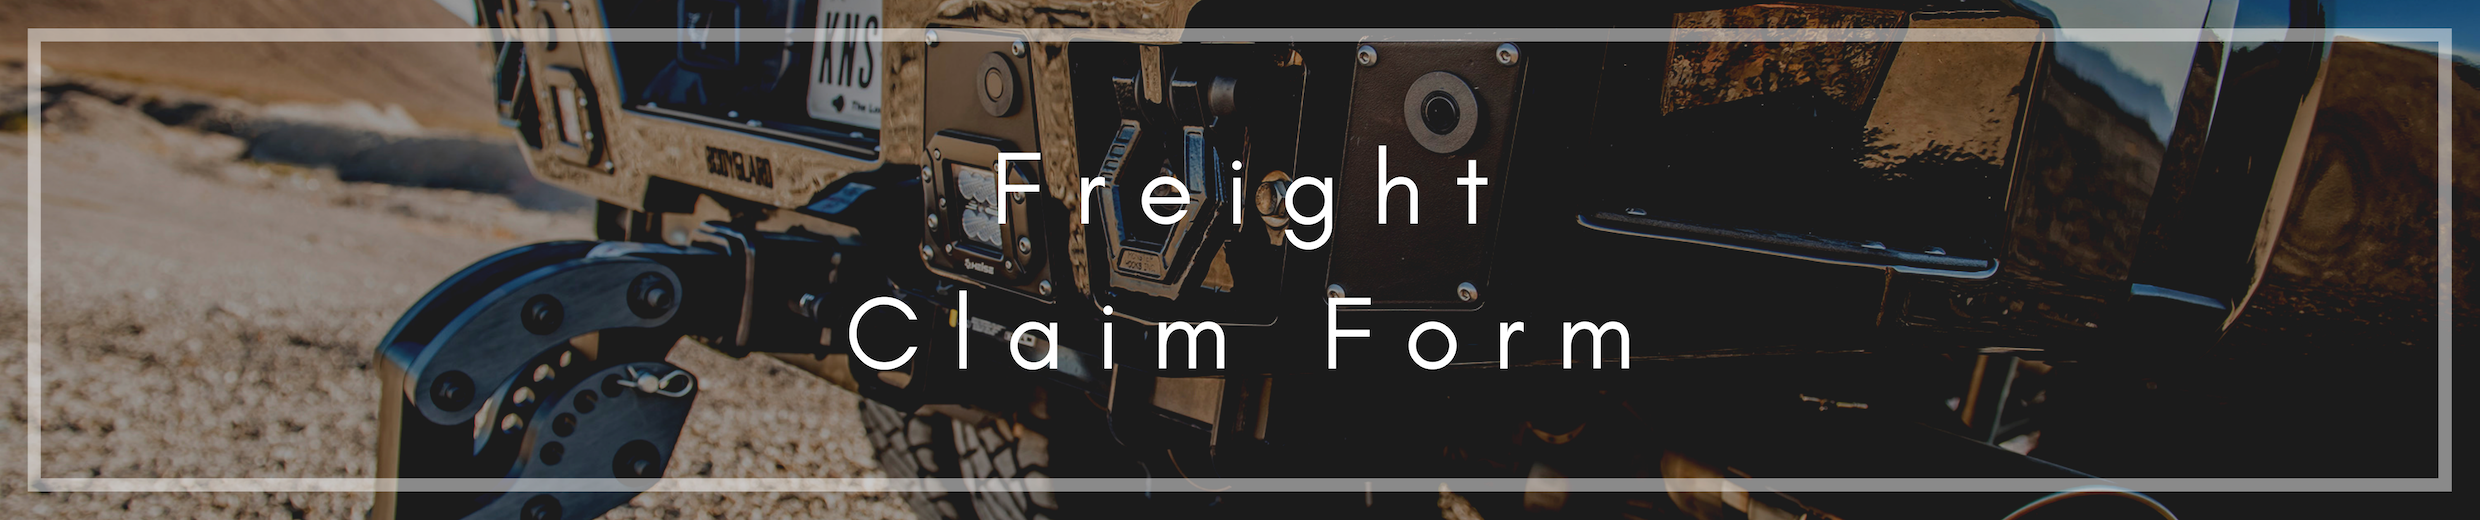 freight-claim-form-banner.png